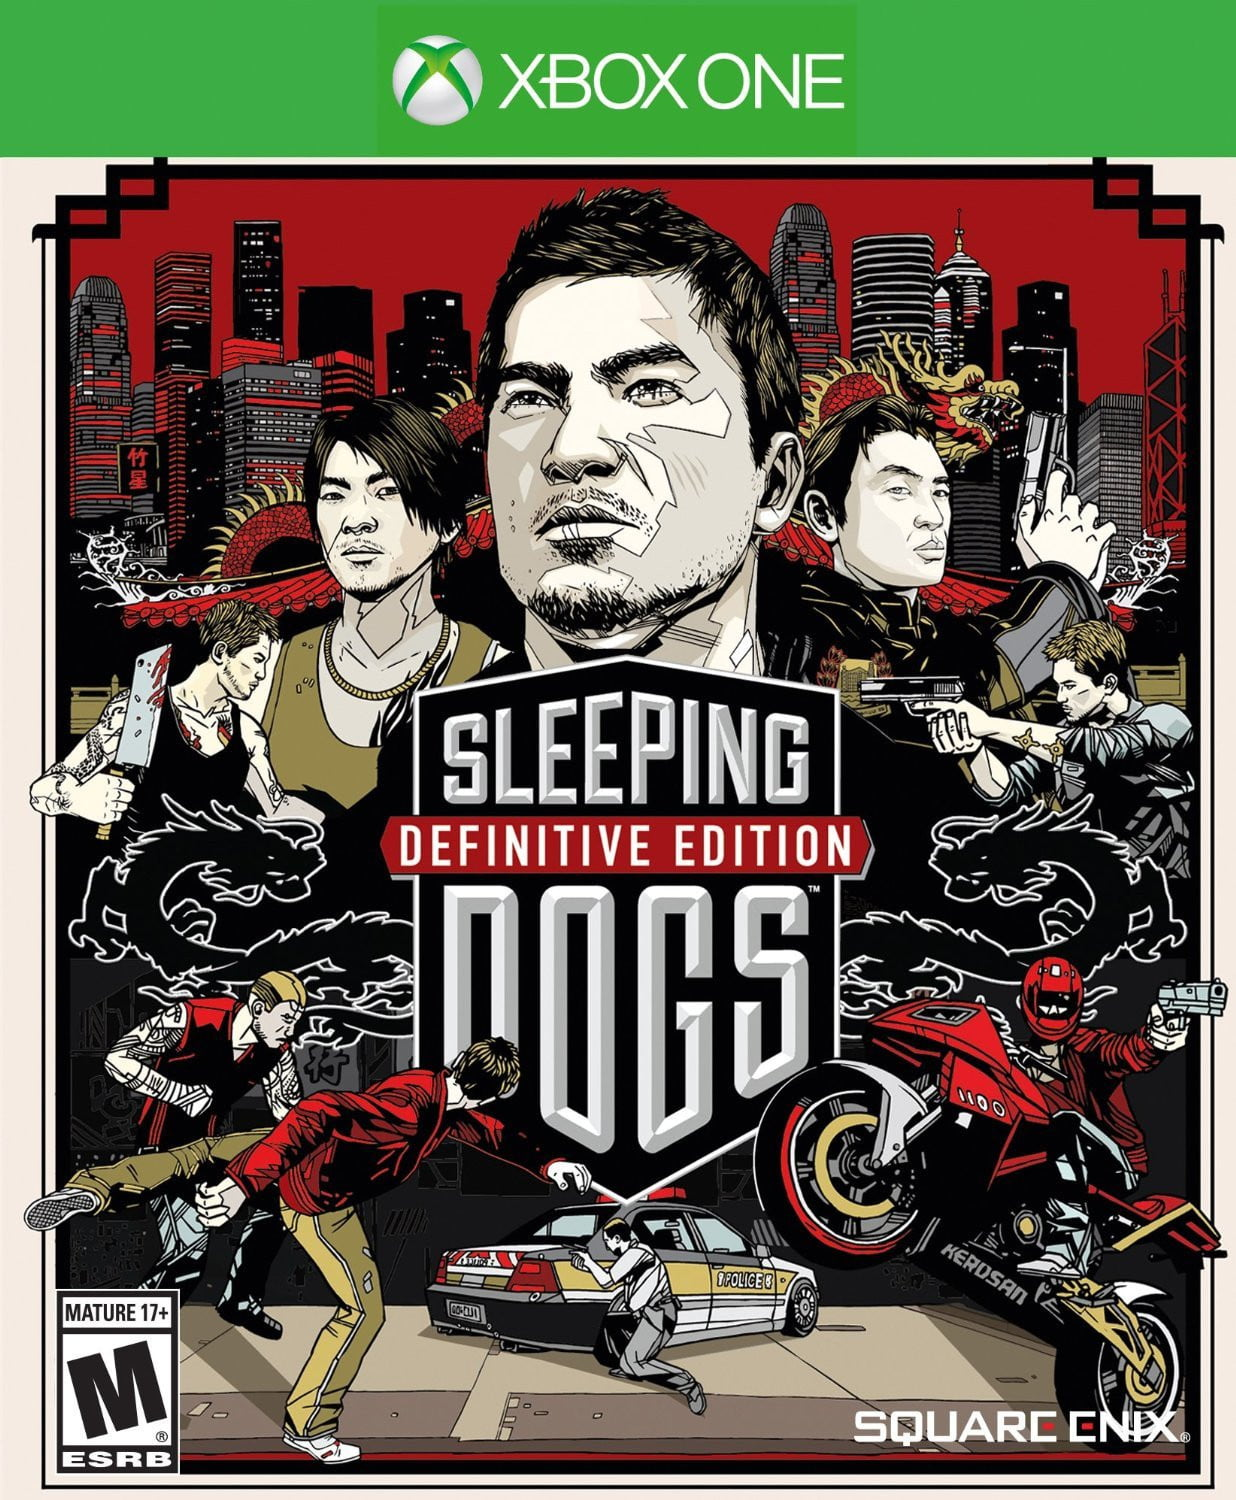 Buy Sleeping Dogs Definitive Edition (XBOX ONE) XBOX ONE in Egypt - Shamy Stores